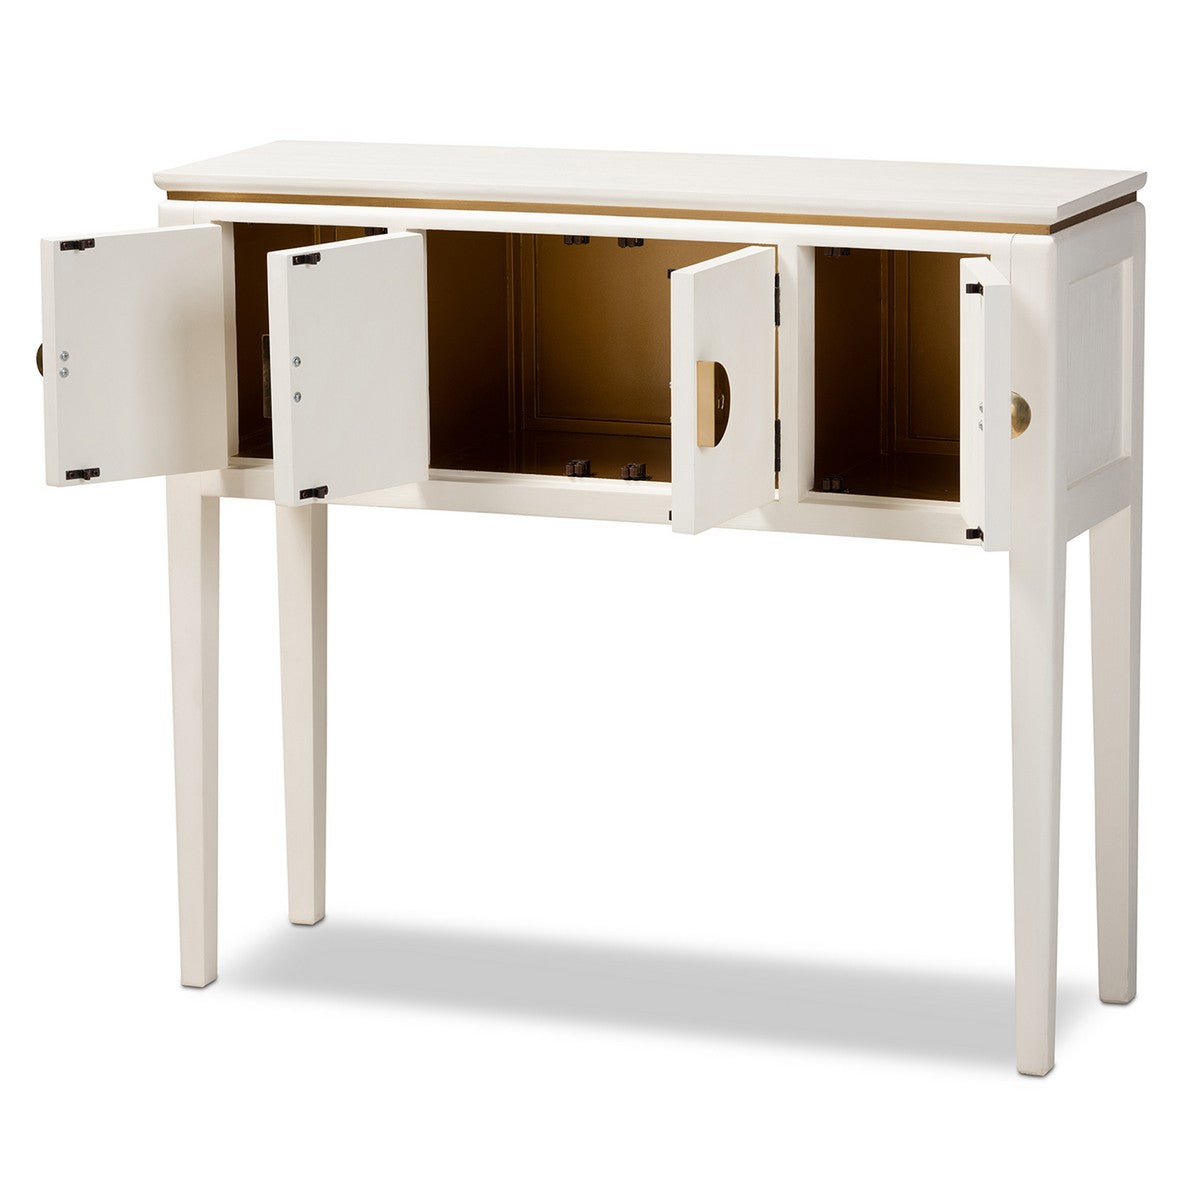 Baxton Studio Aiko Classic and Traditional Japanese-Inspired Off-White Finished 4-Door Wood Console Table Baxton Studio-side tables-Minimal And Modern - 1